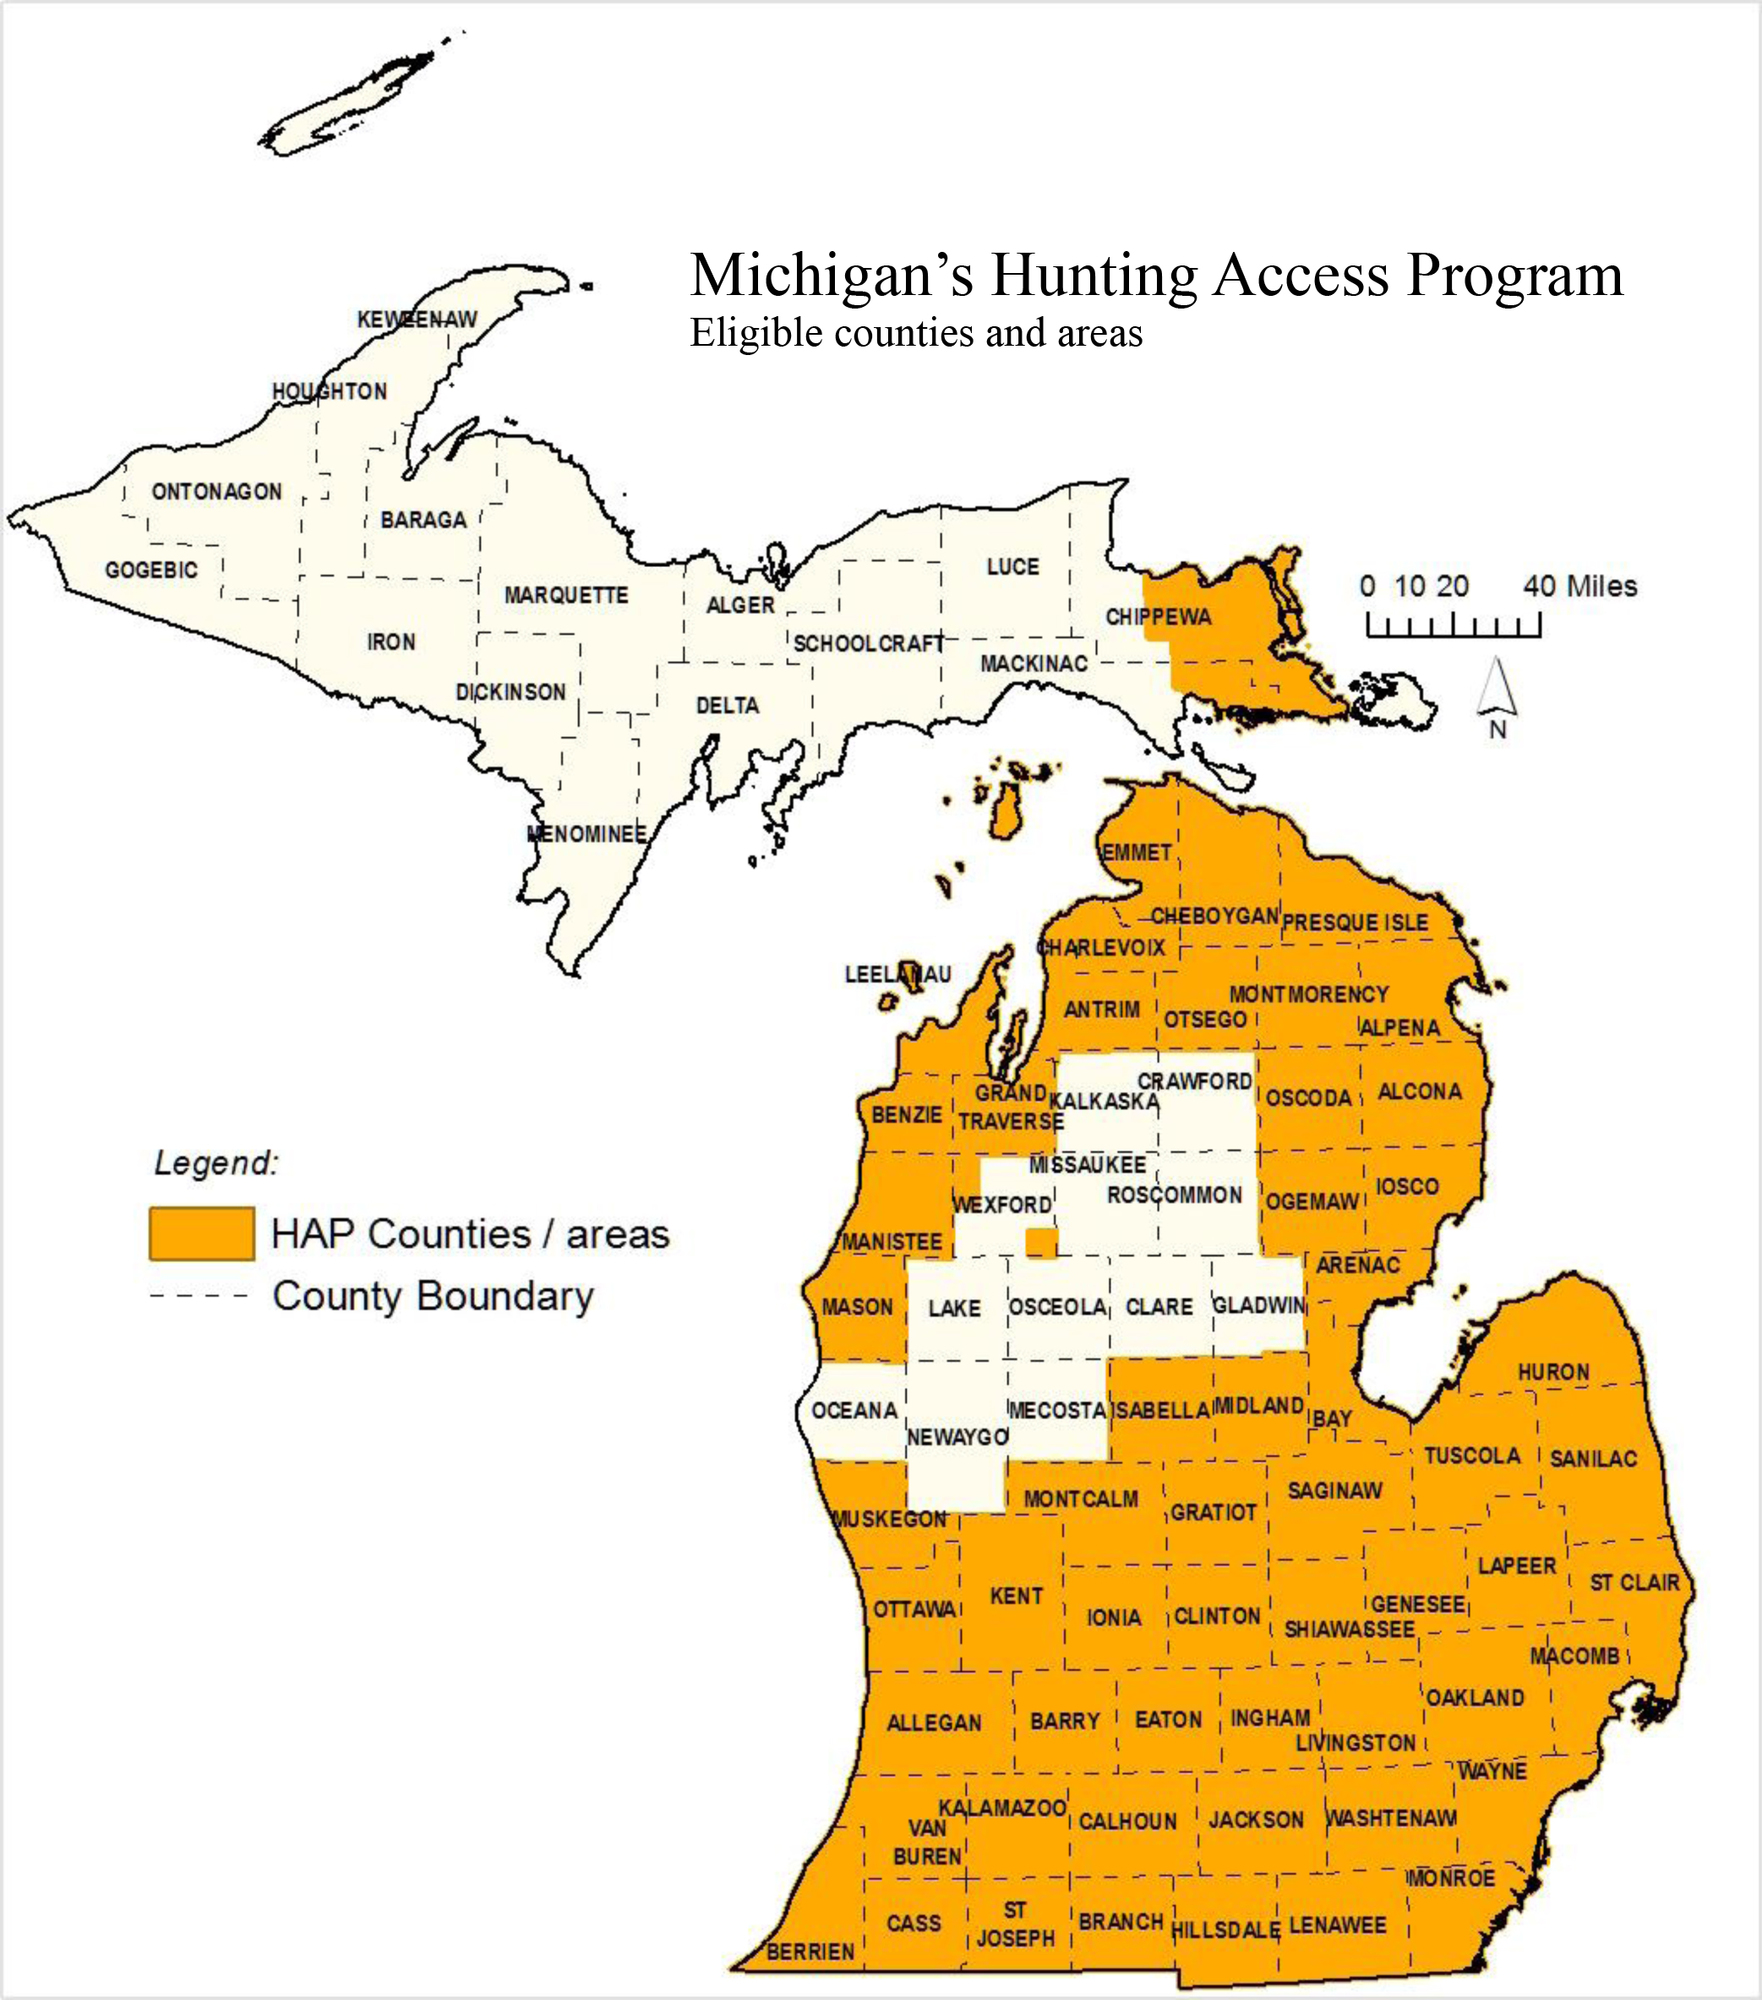 A map shows the eligible counties and areas in Michigan under the Hunting Access Program.